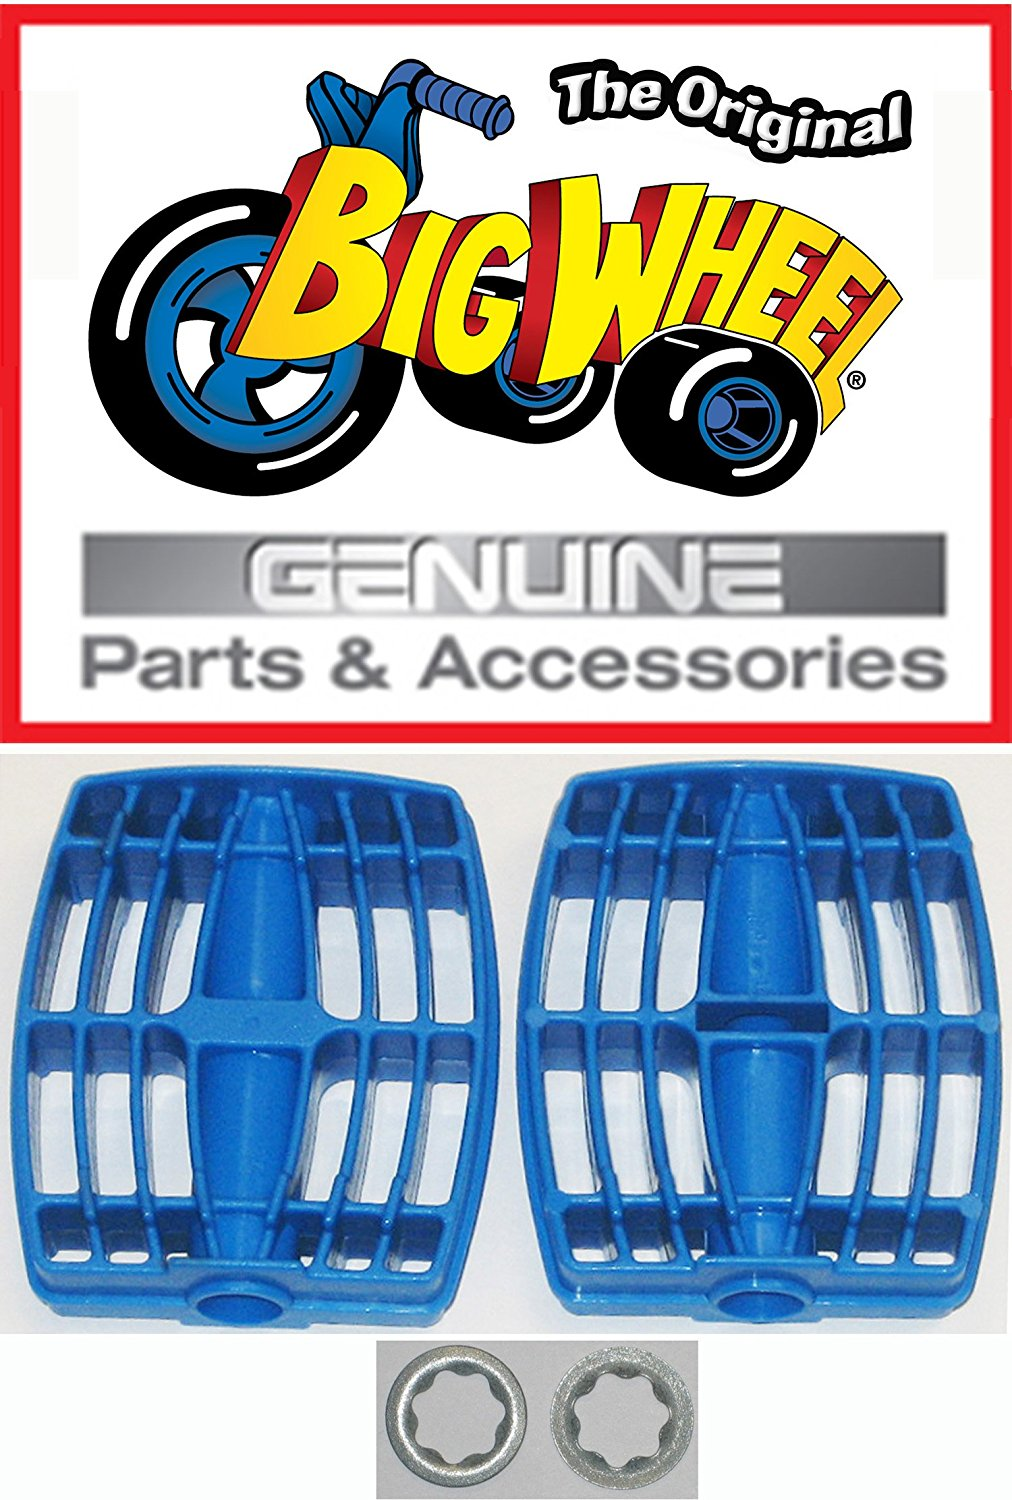 """PEDALS & WASHERS for The Original """"Classic"""" Big Wheel 16"""", Replacement Parts, Set of 2 Pedals & Washers 3/8"""", Blue, 1 pair of each"""